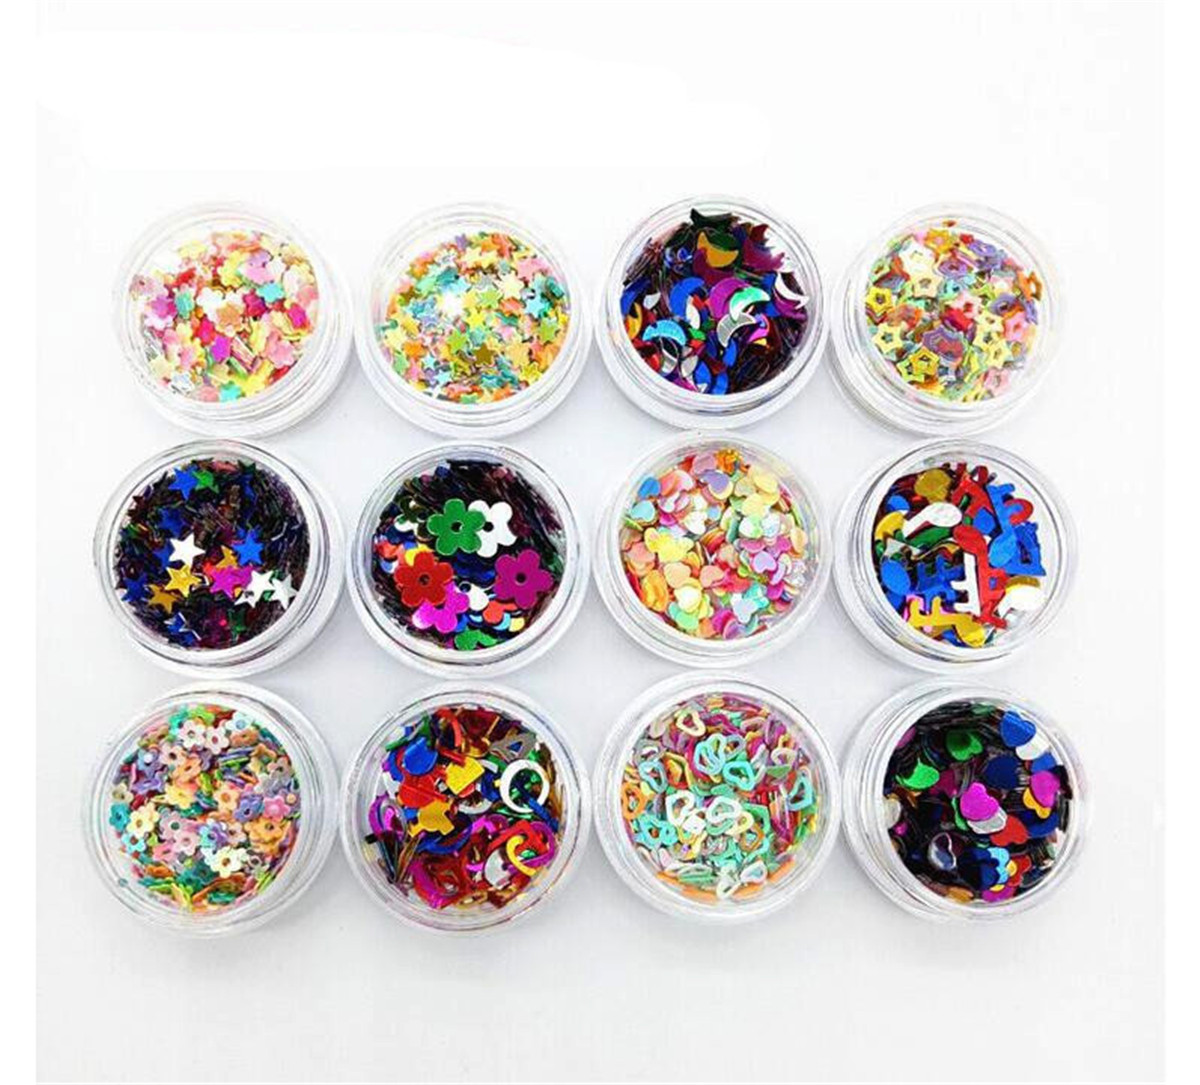 12pcs Sequins Stars Hearts Moon Metallic Nail Body Art Glitter Nails Paillette Flakes Decor Makeup Accessories Diy Craft Tools in Nail Glitter from Beauty Health